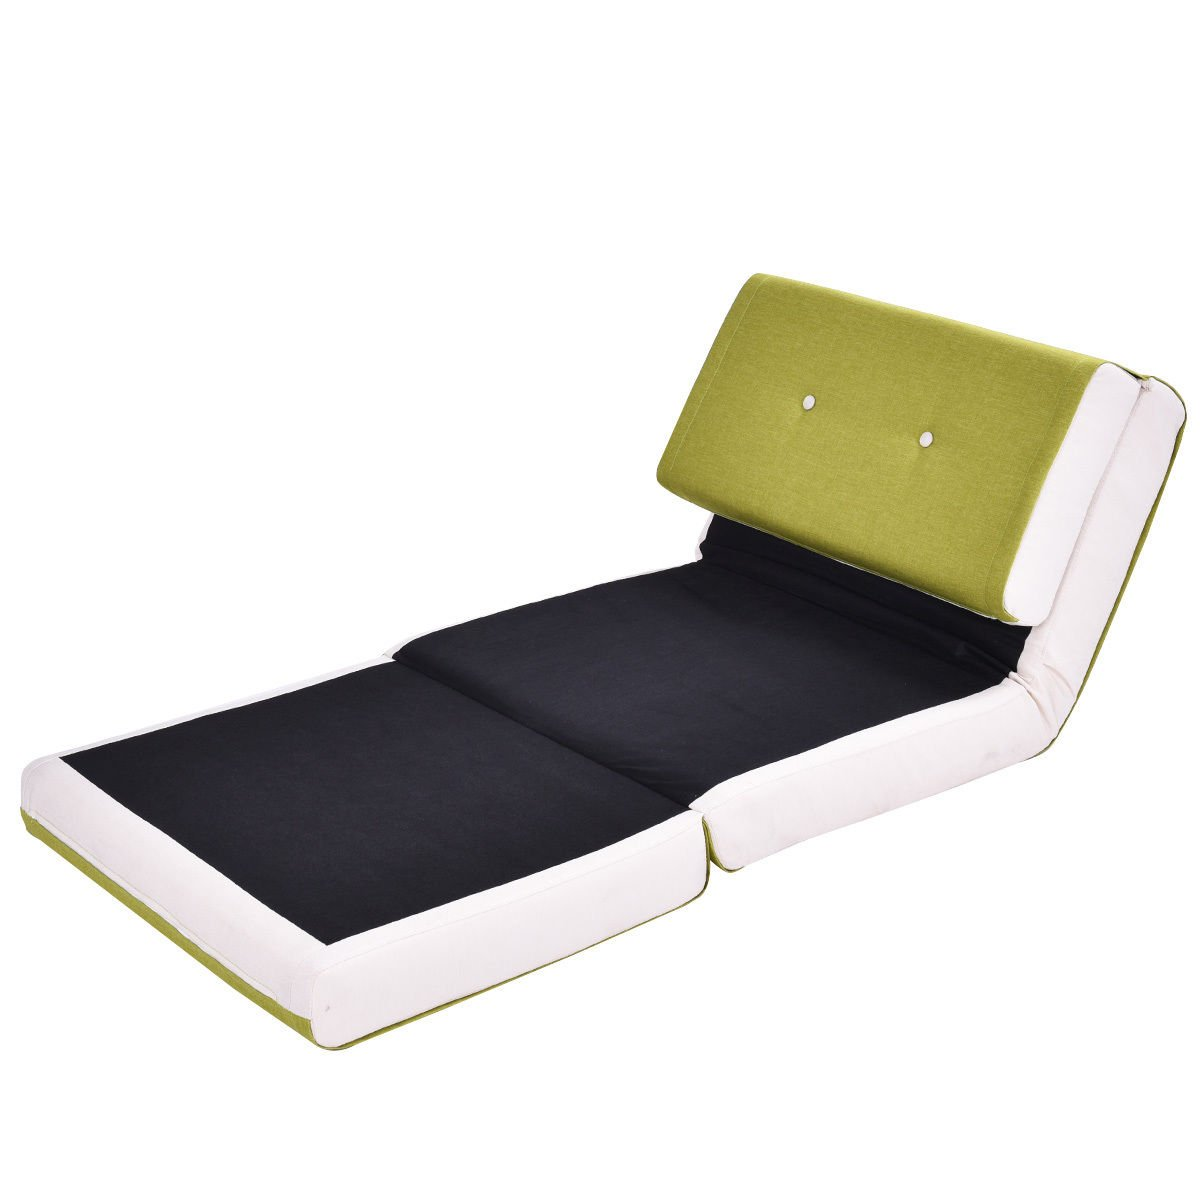 Fold Down Chair Flip Out Lounger Convertible Sleeper Bed Couch Game Dorm Green by Tumsun (Image #5)